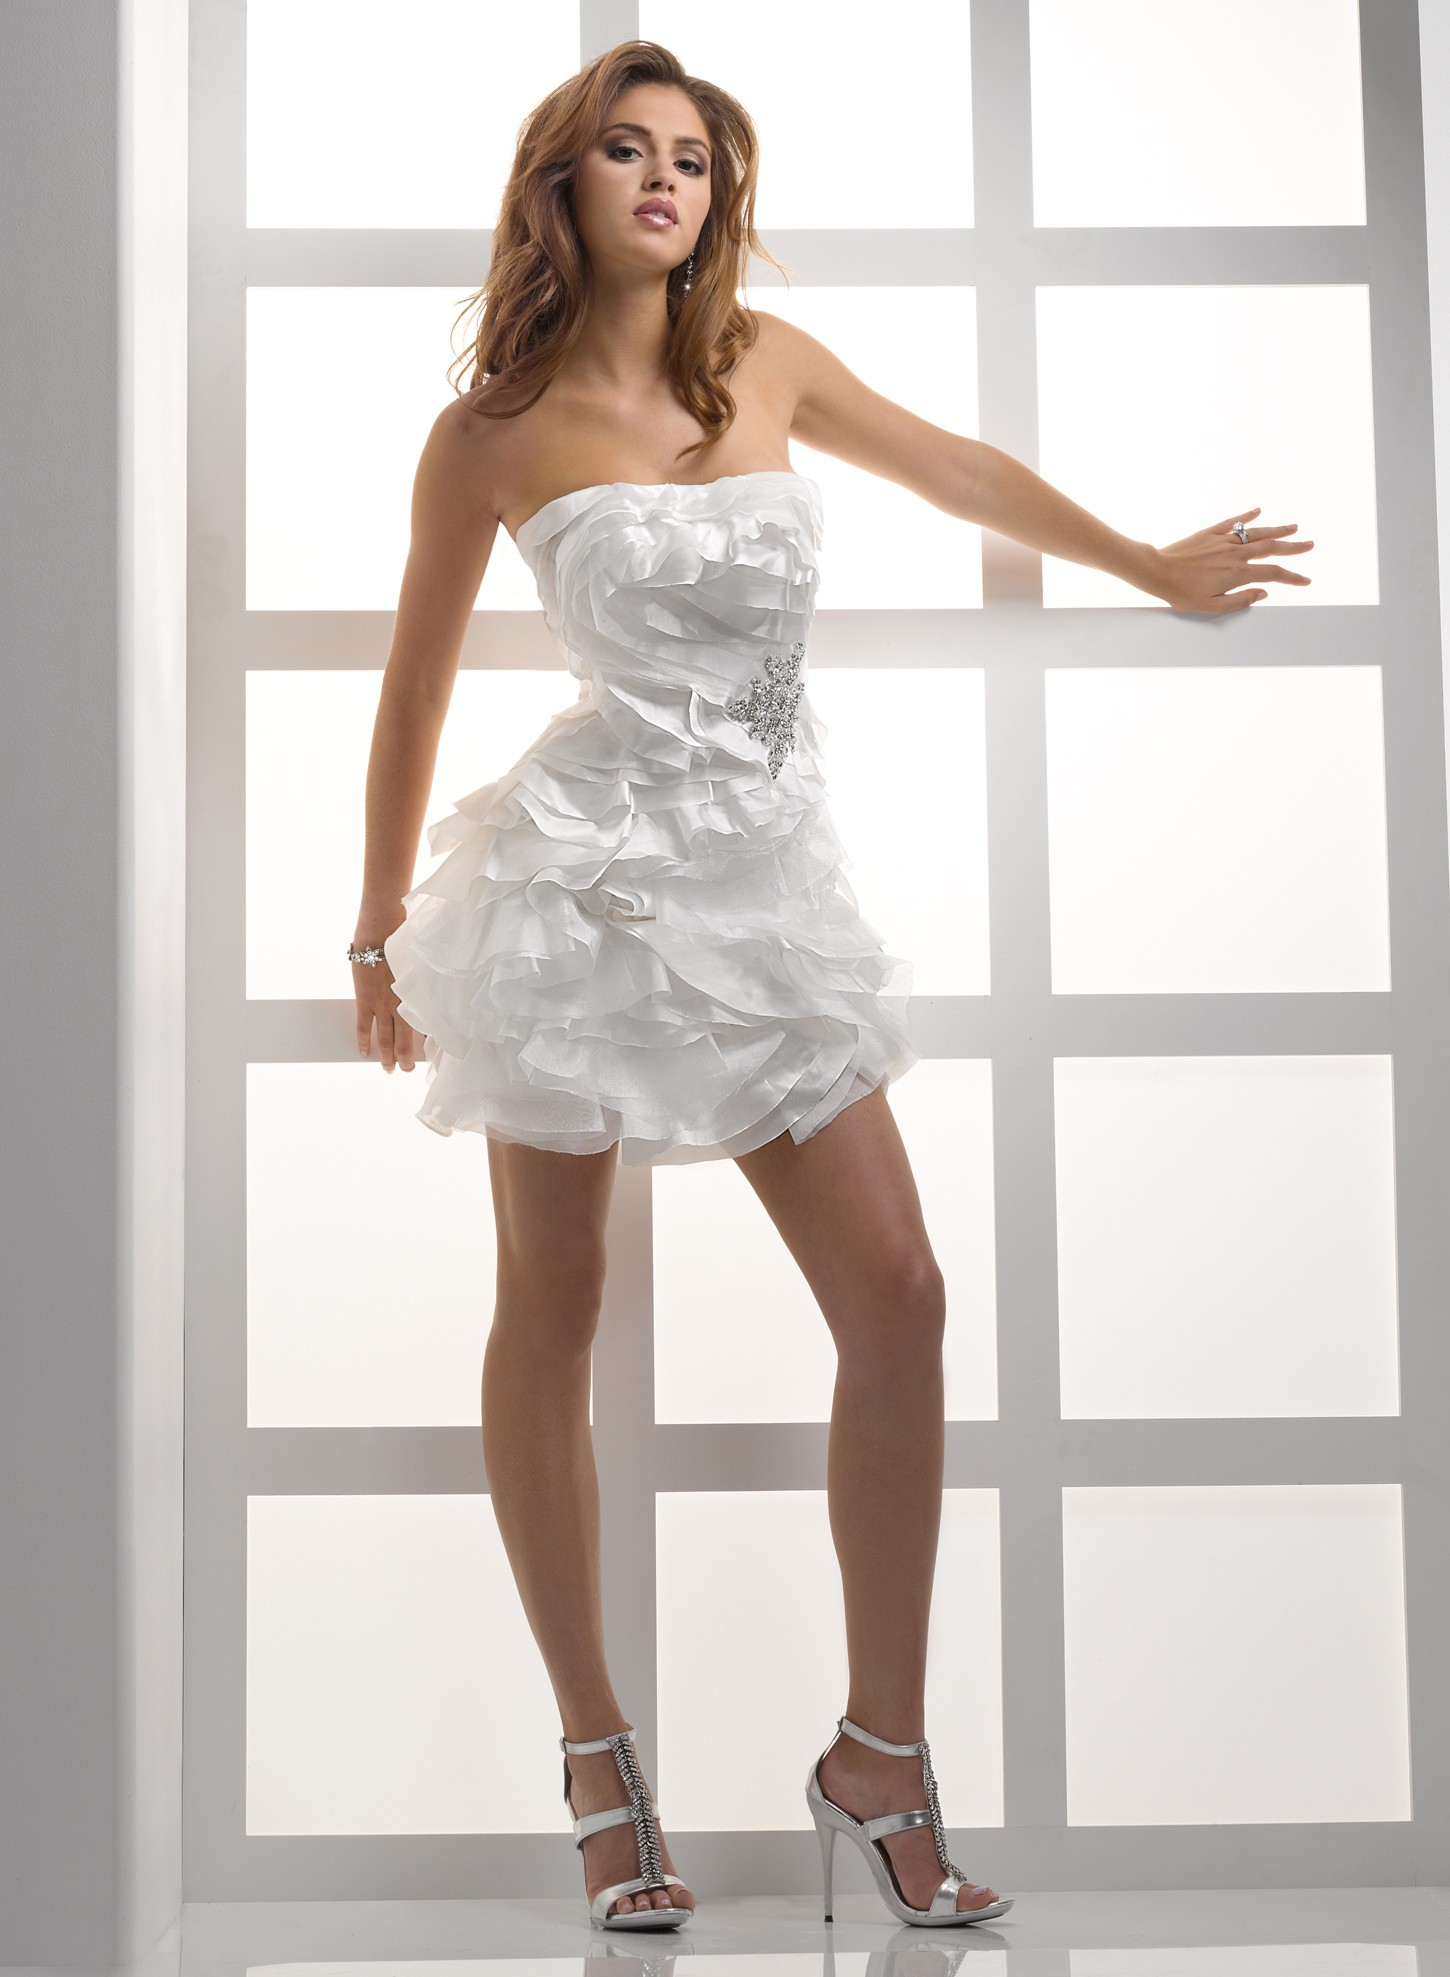 Strapless wedding dresses dressed up girl for Short wedding dresses uk